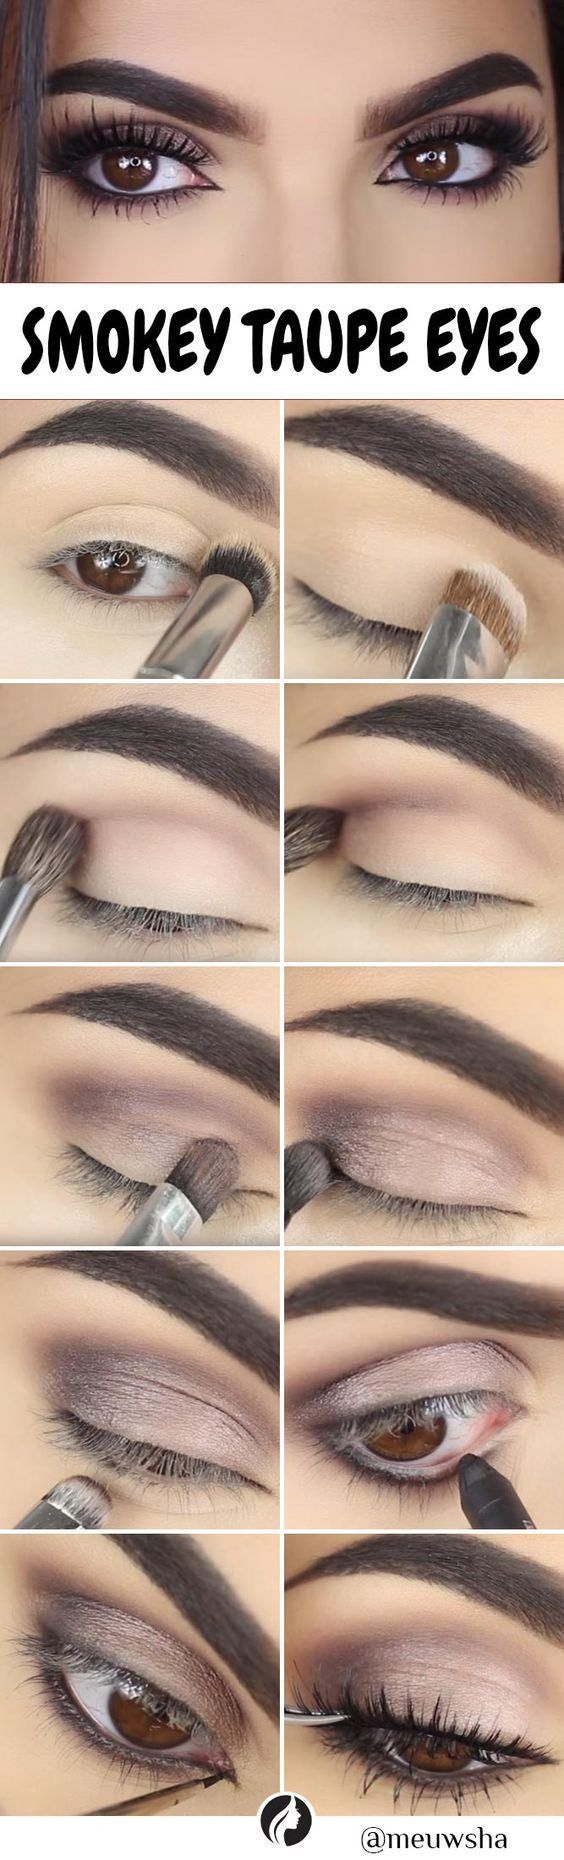 This step by step Smokey Taupe Eye Makeup DIY is perfect and can be followed eas #eyemakeup